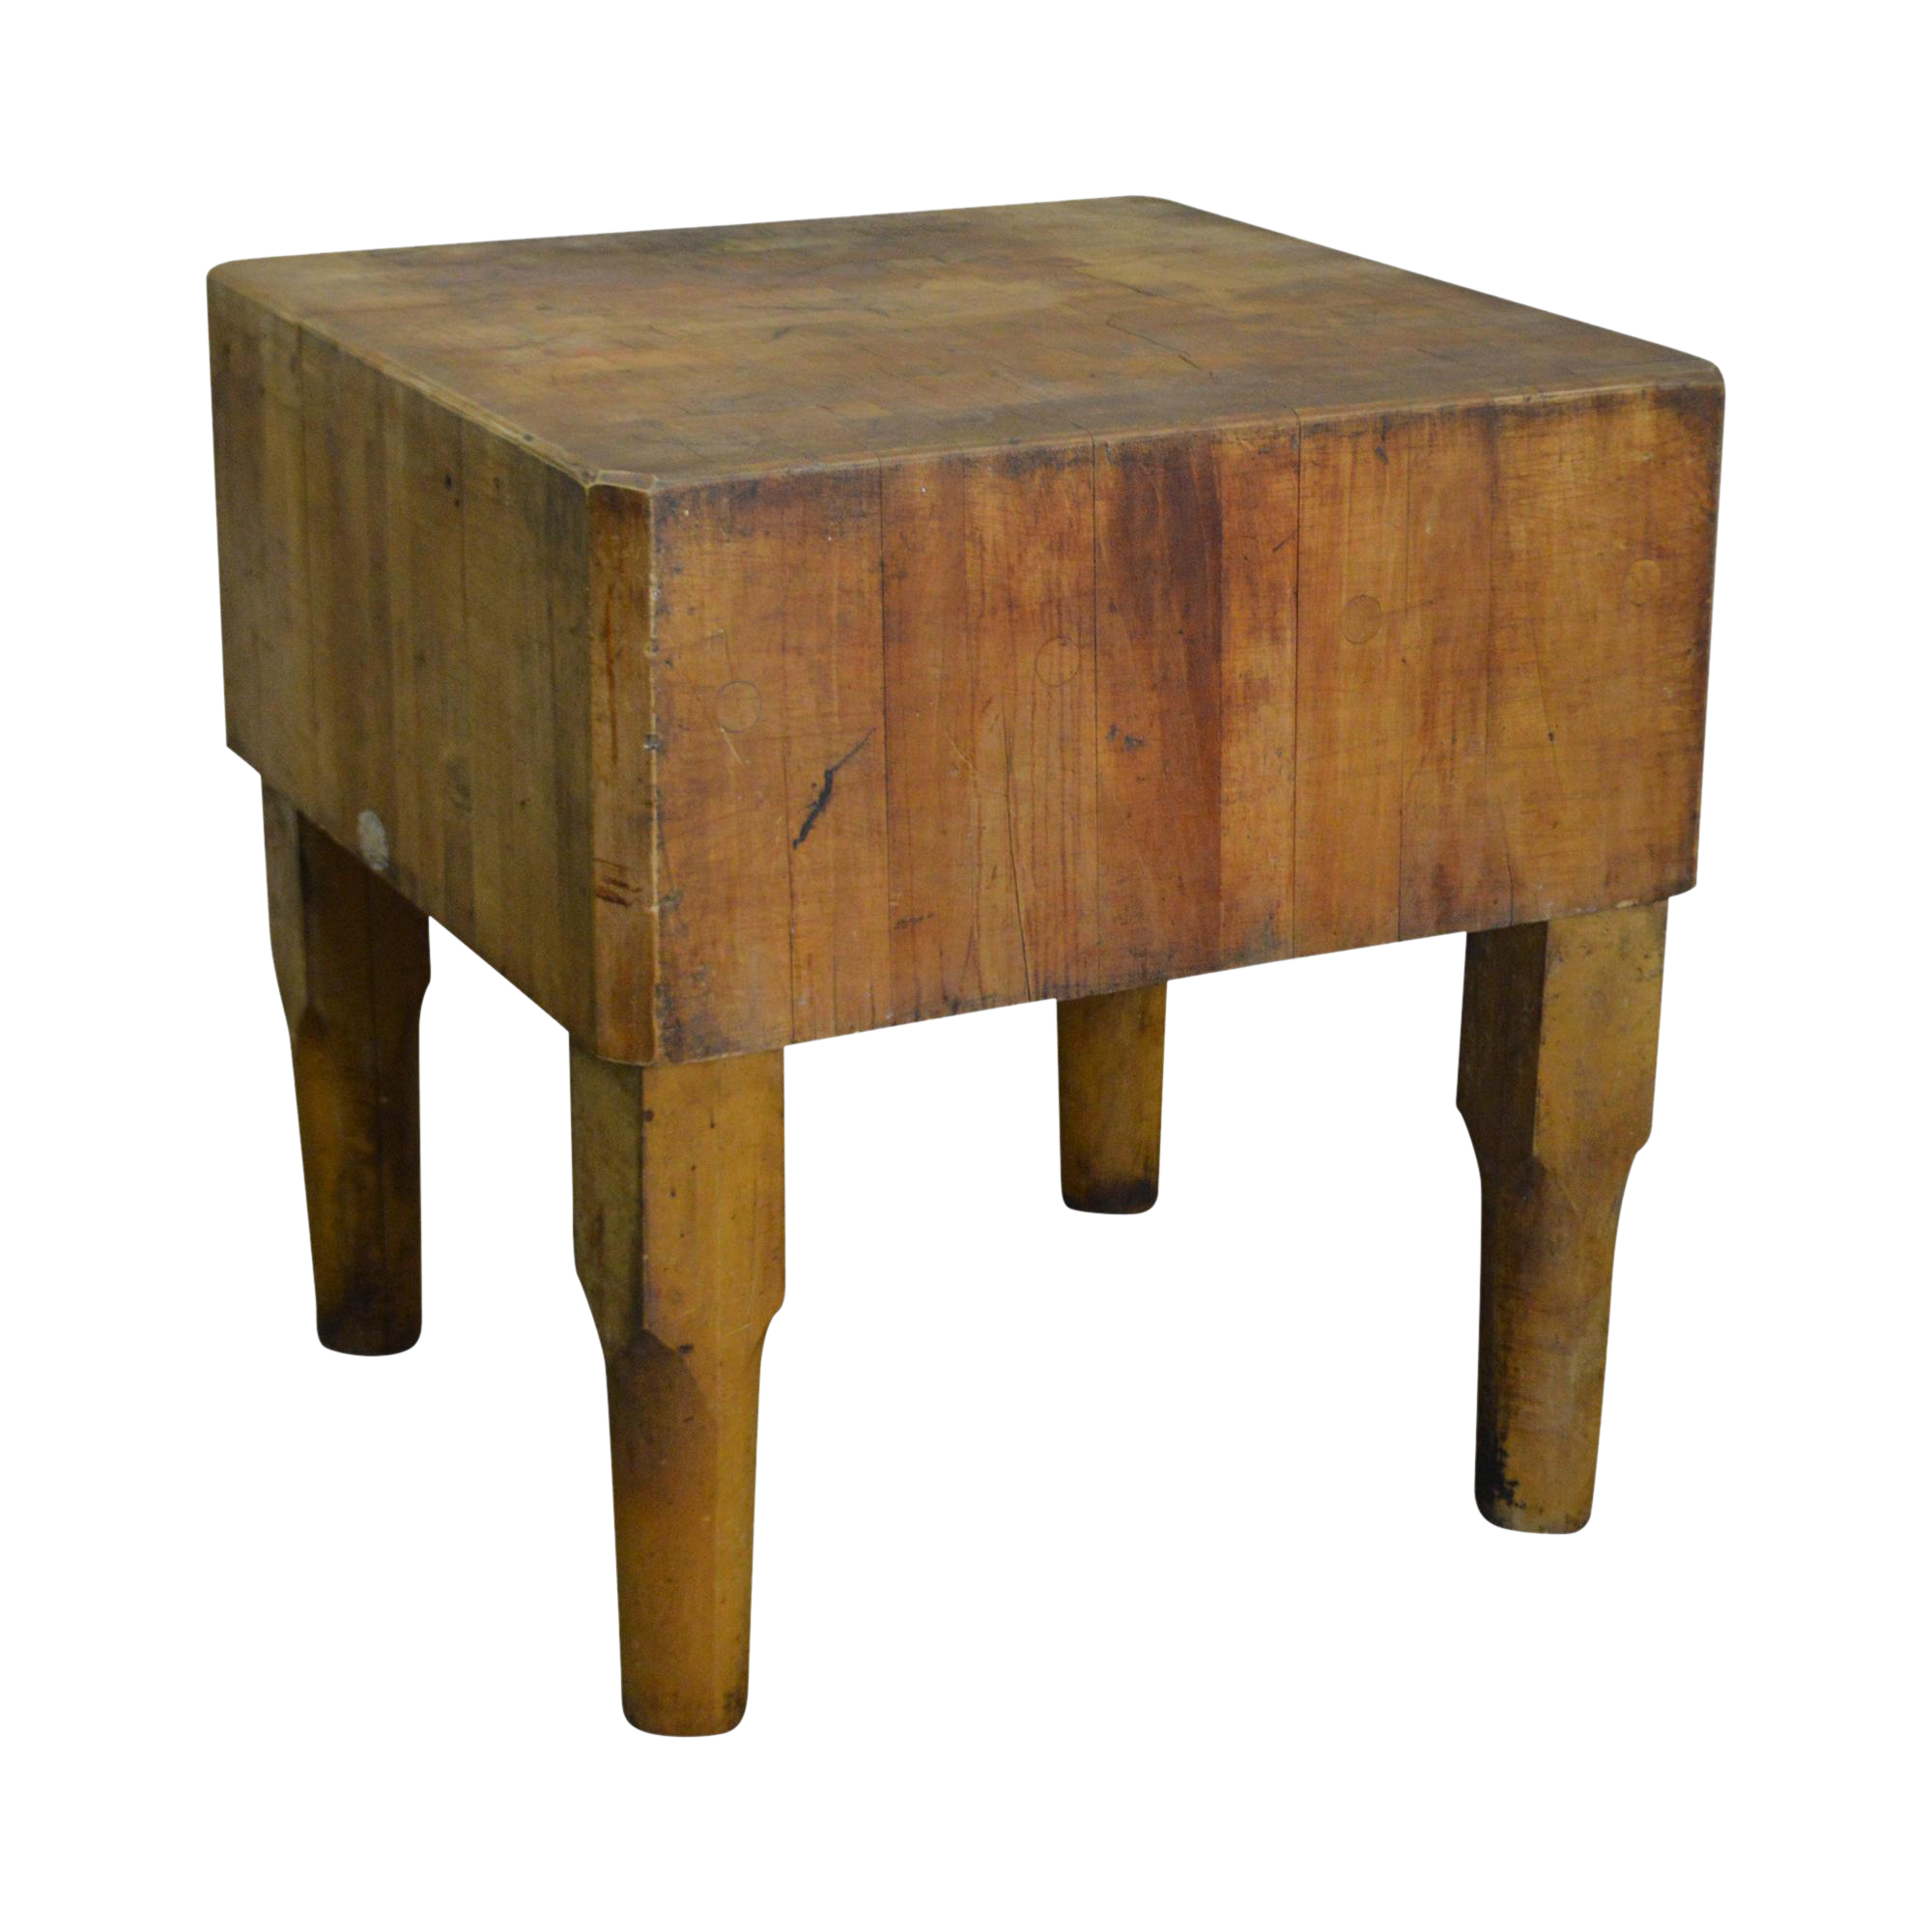 Vintage Antique Maple Butcher Block Table By Bally Block Co.